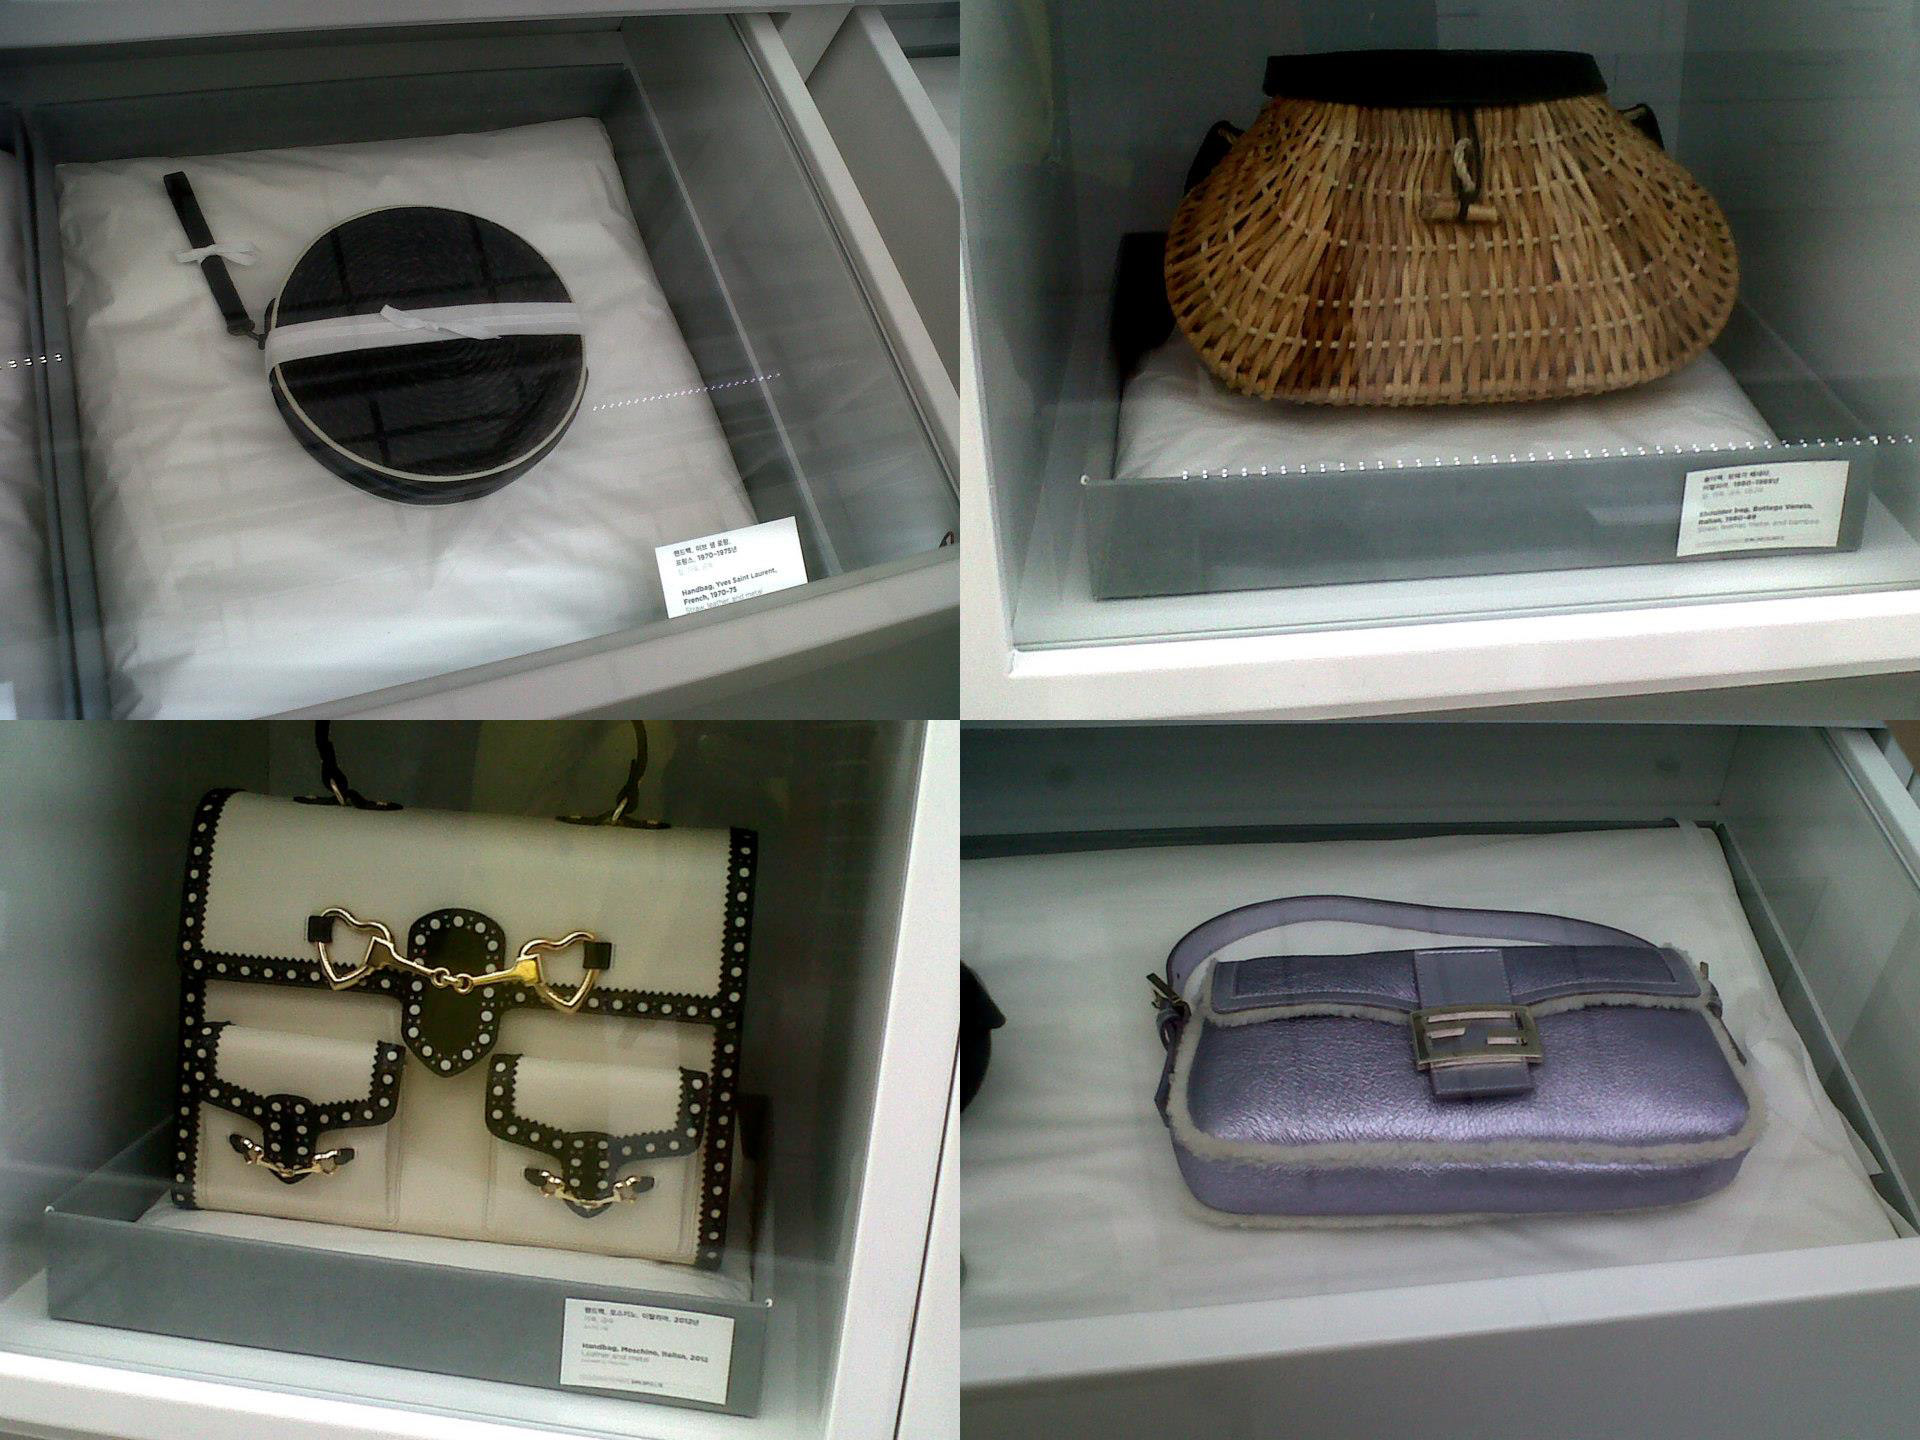 Yves Saint Laurent (1970-75), Bottega Veneta (1980 -89), Fendi baguette (2011) and Moschino (2012) - Simone Handbag Museum, Gangnam-gu, Seoul, South Korea